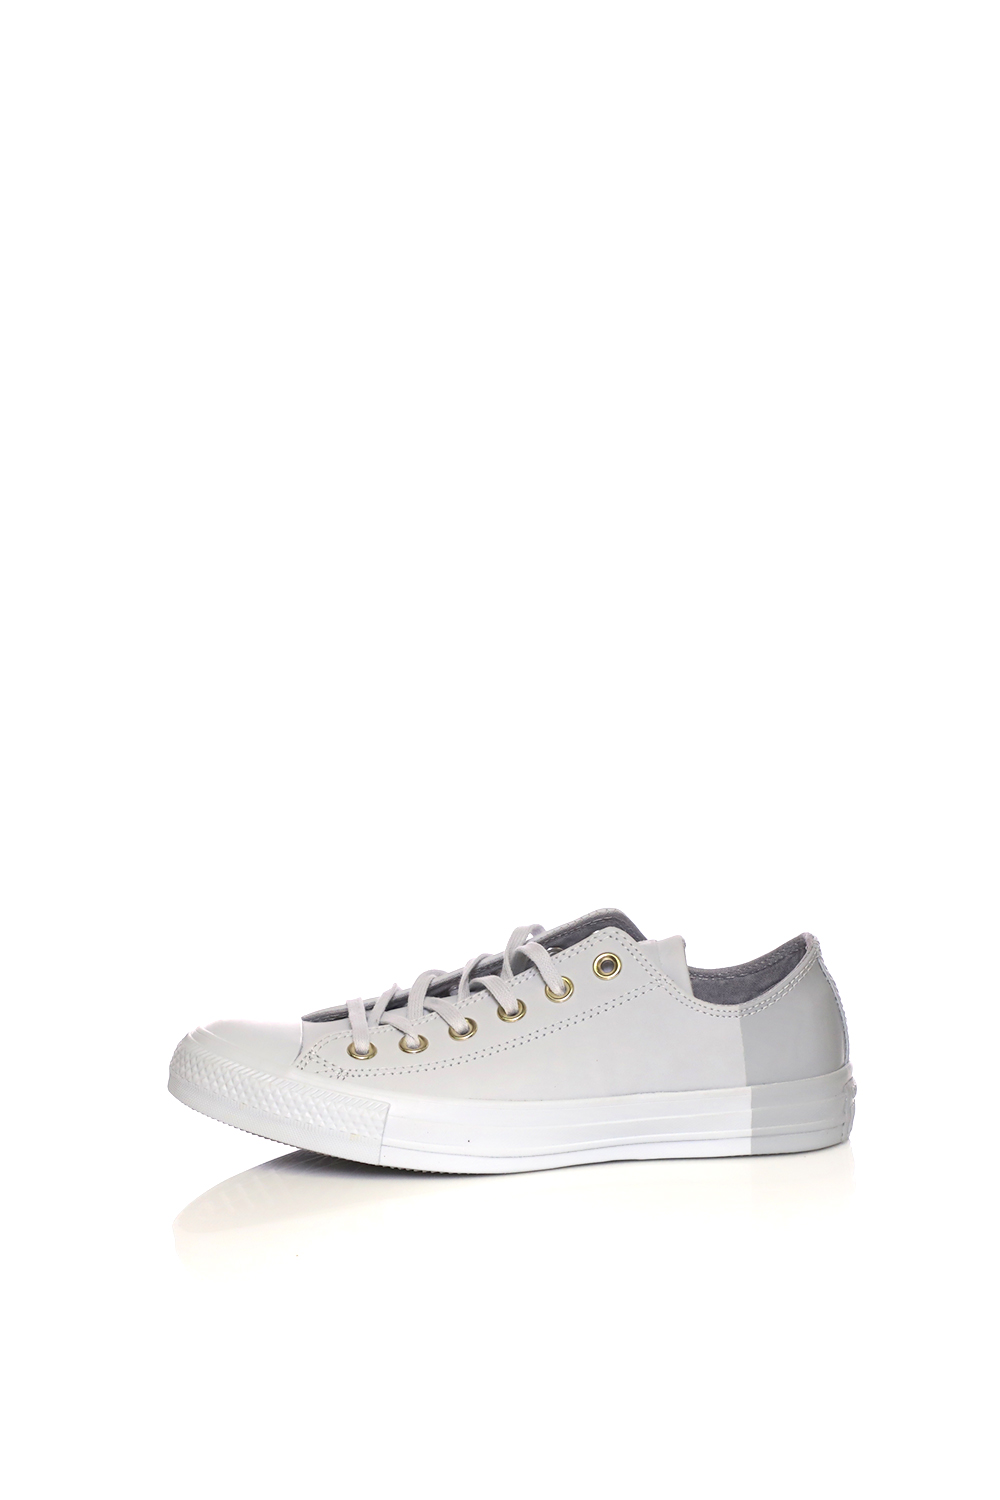 CONVERSE – Γυναικεία sneakers Converse Chuck Taylor All Star Ox γκρι